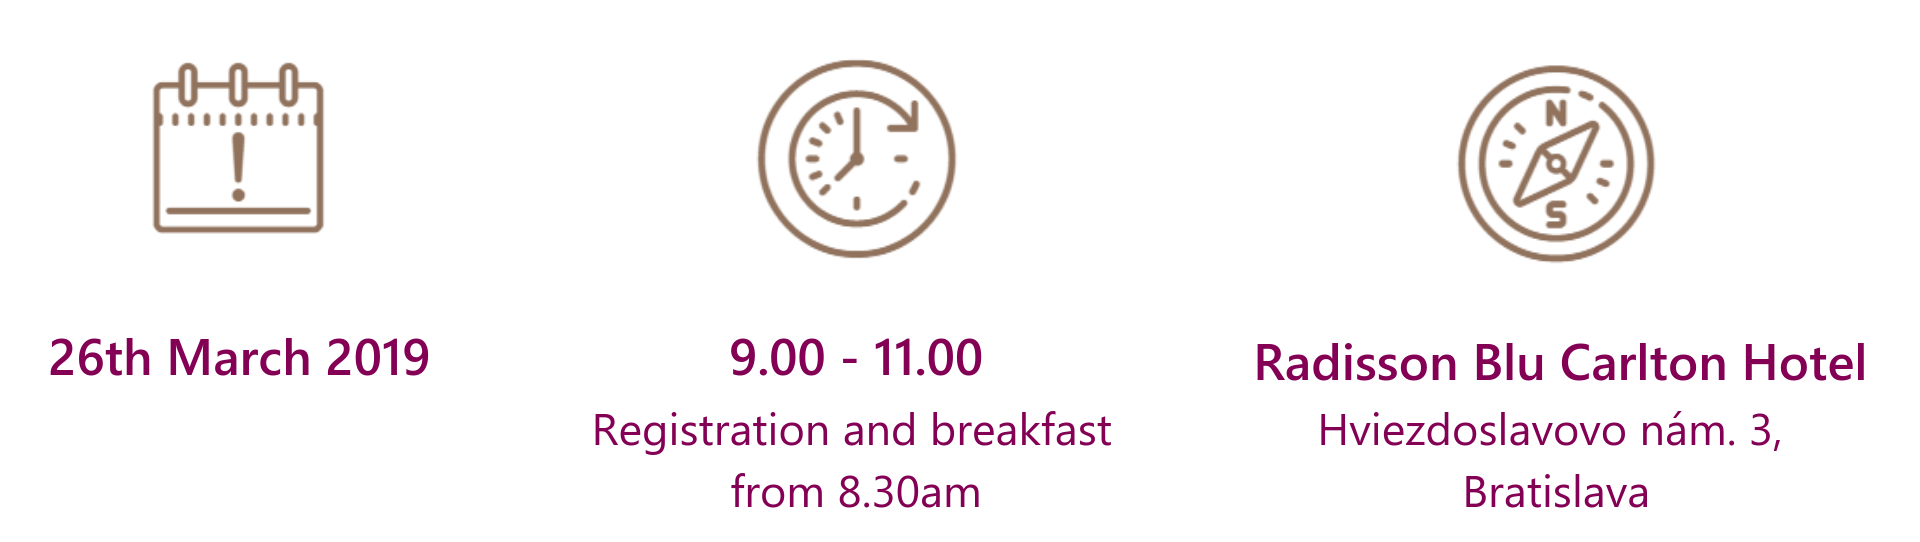 1 1 - Join us for the CFO Club Business Breakfast